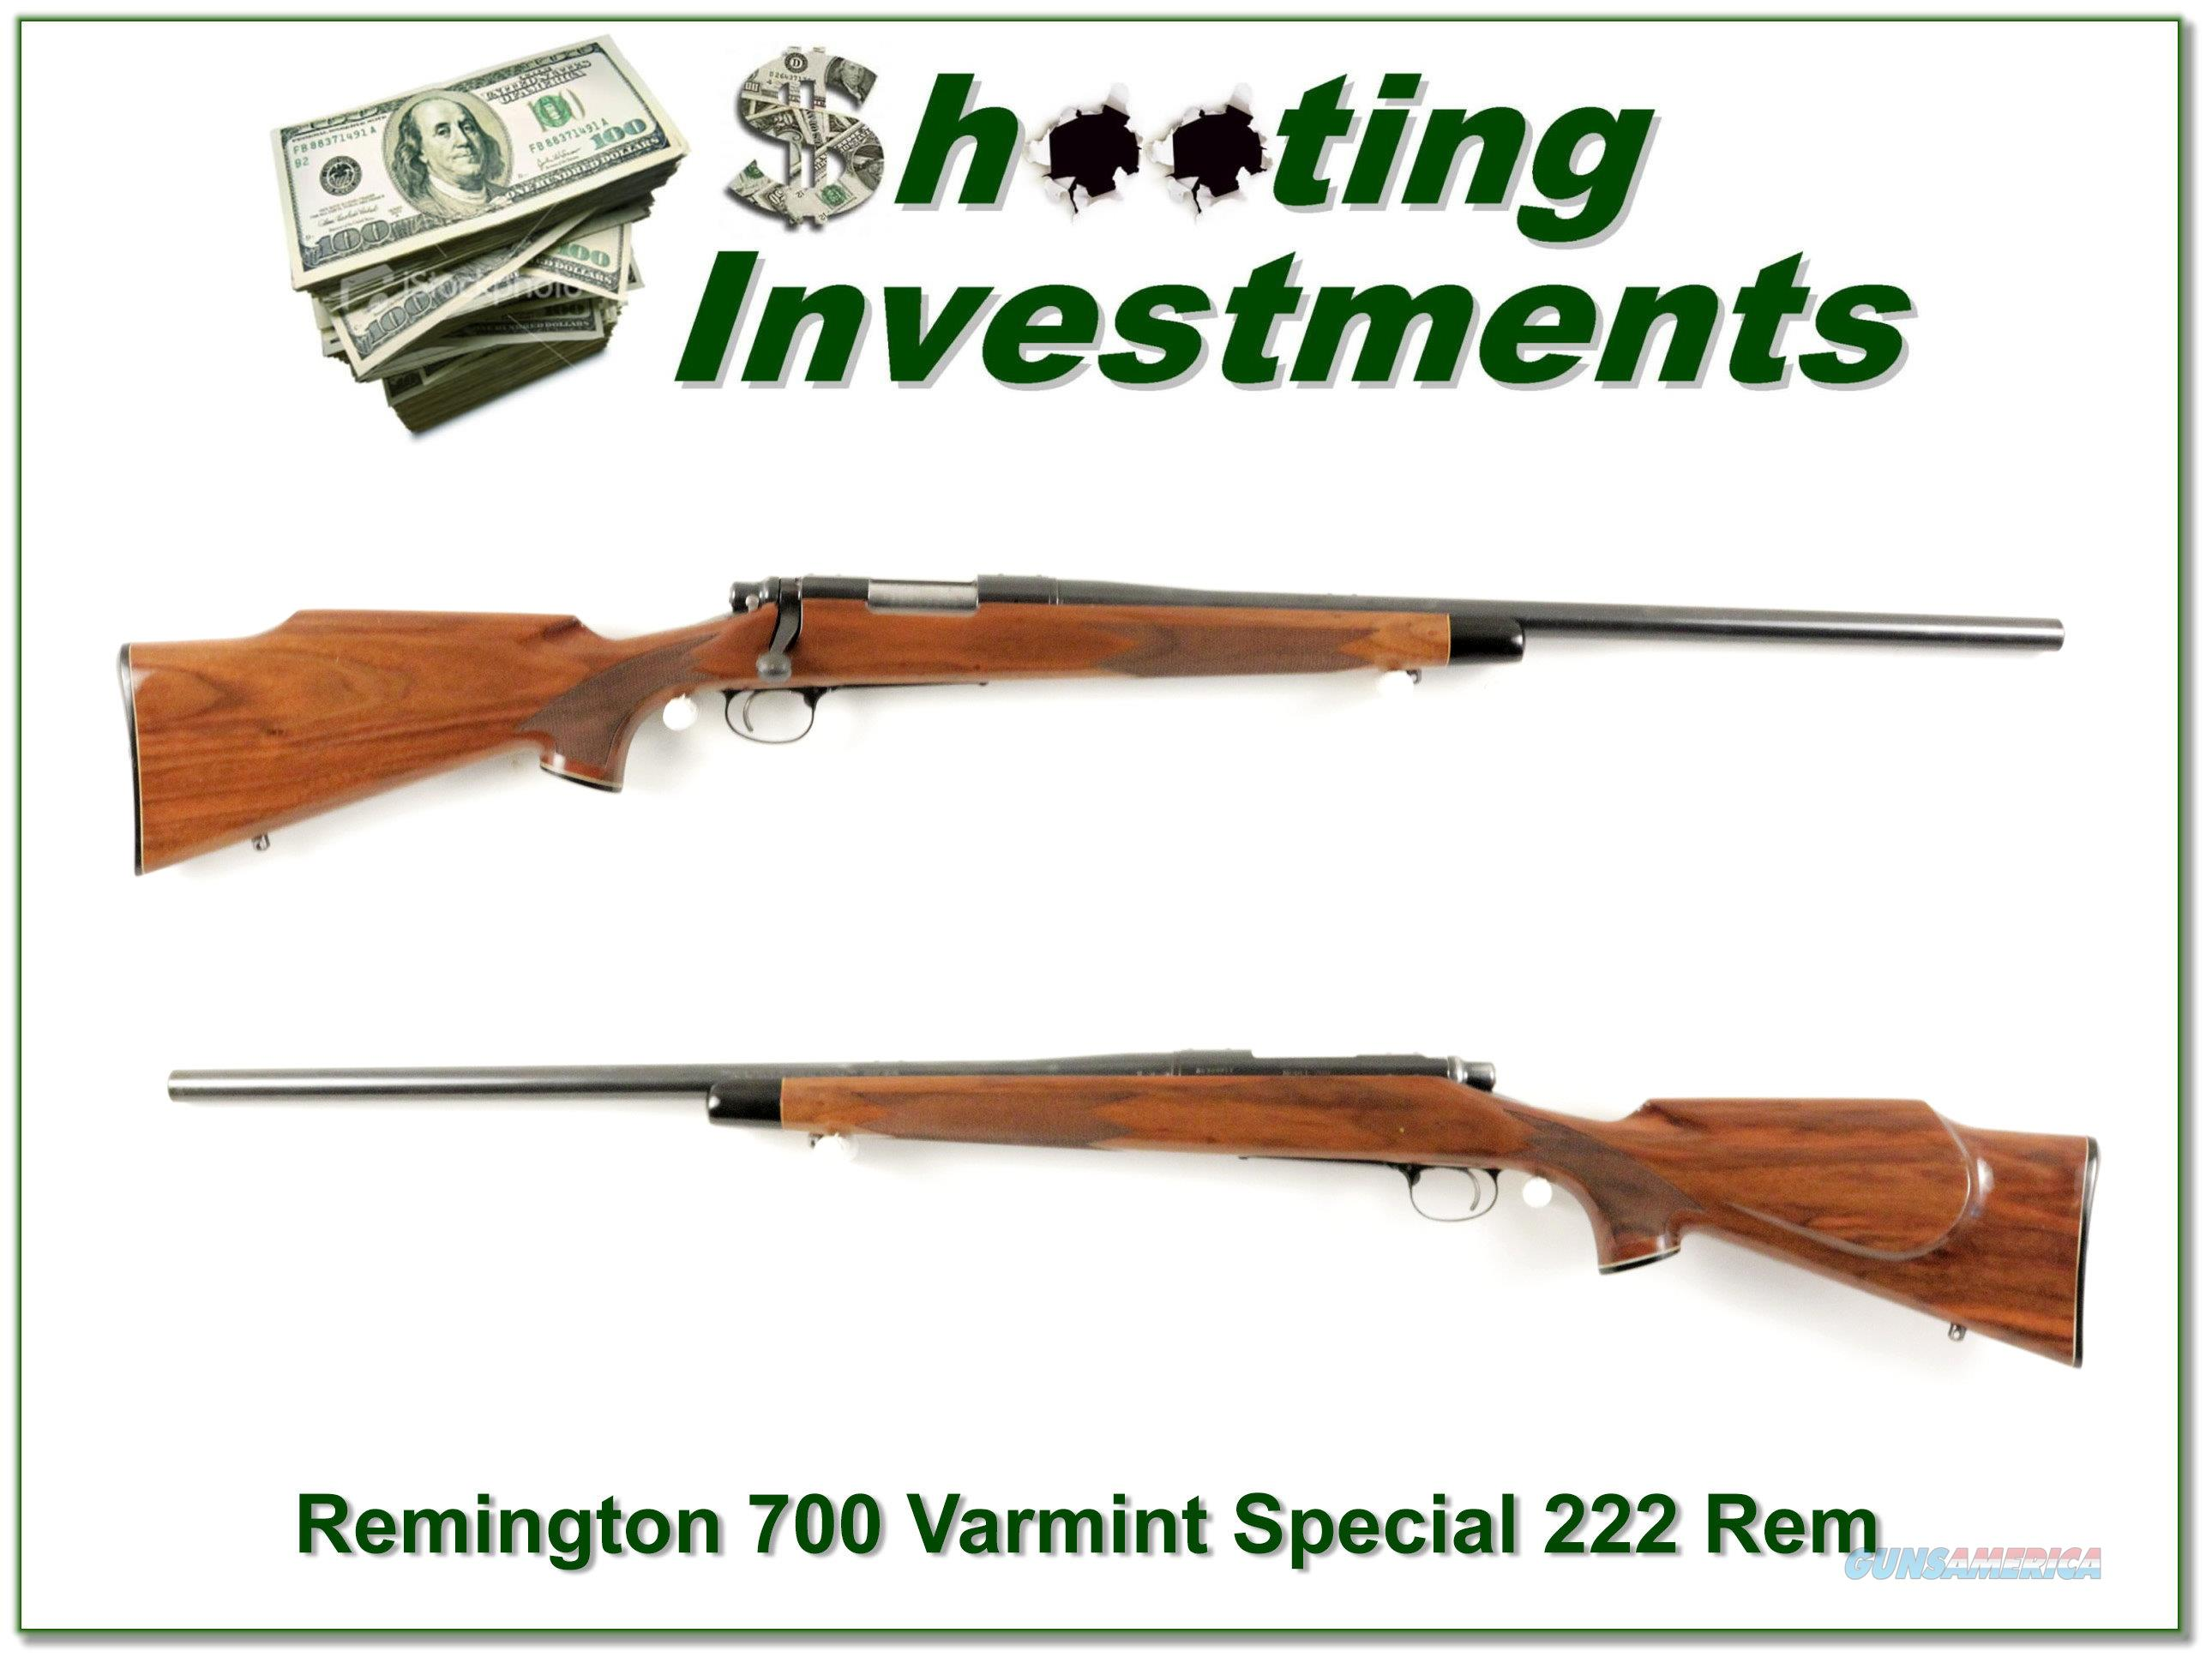 Remington 700 BDL Varmint Special 222 Rem  Guns > Rifles > Remington Rifles - Modern > Model 700 > Sporting